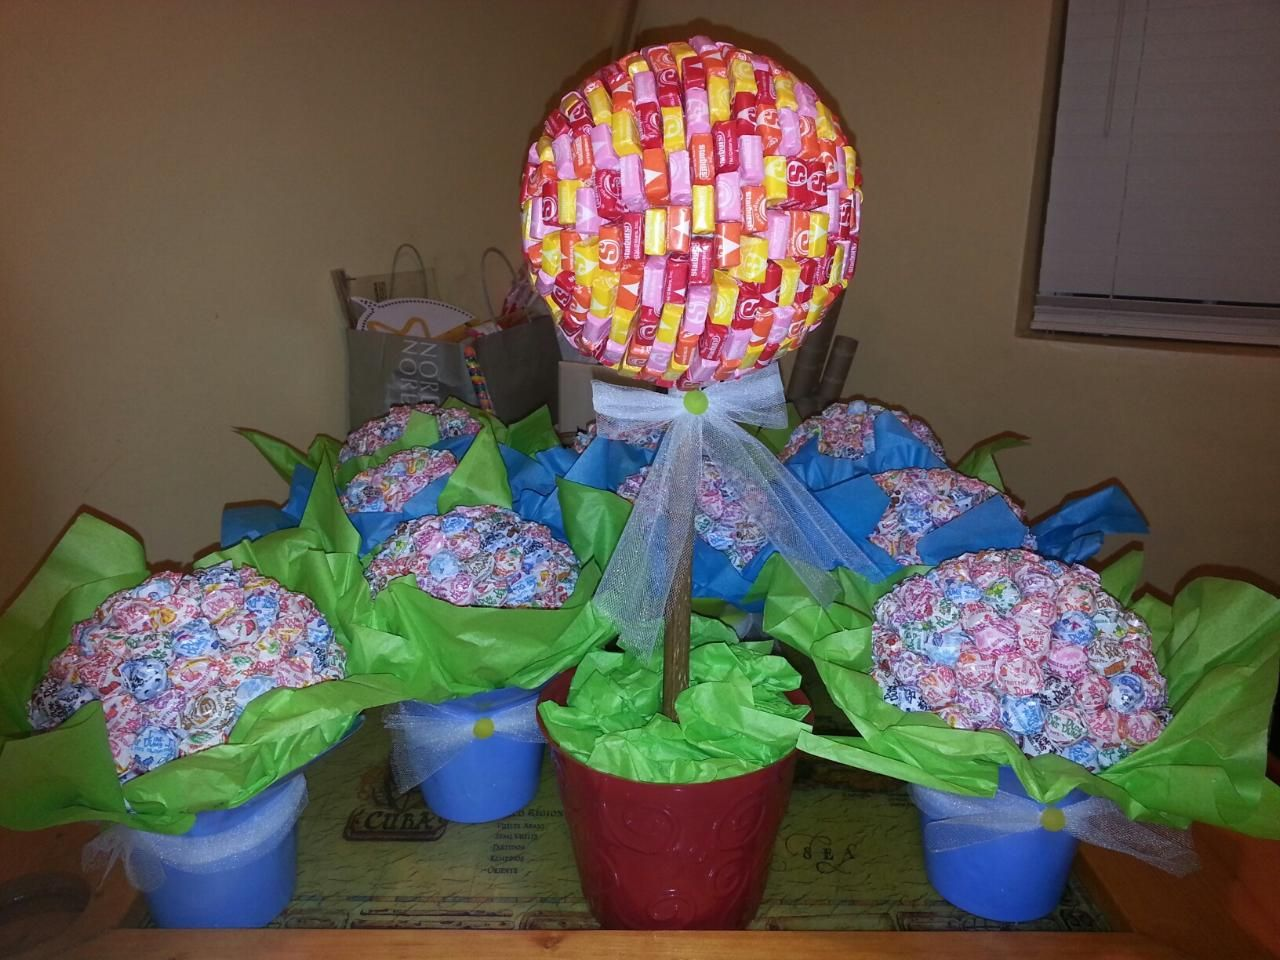 Starburst topiary for my candy land themed baby shower